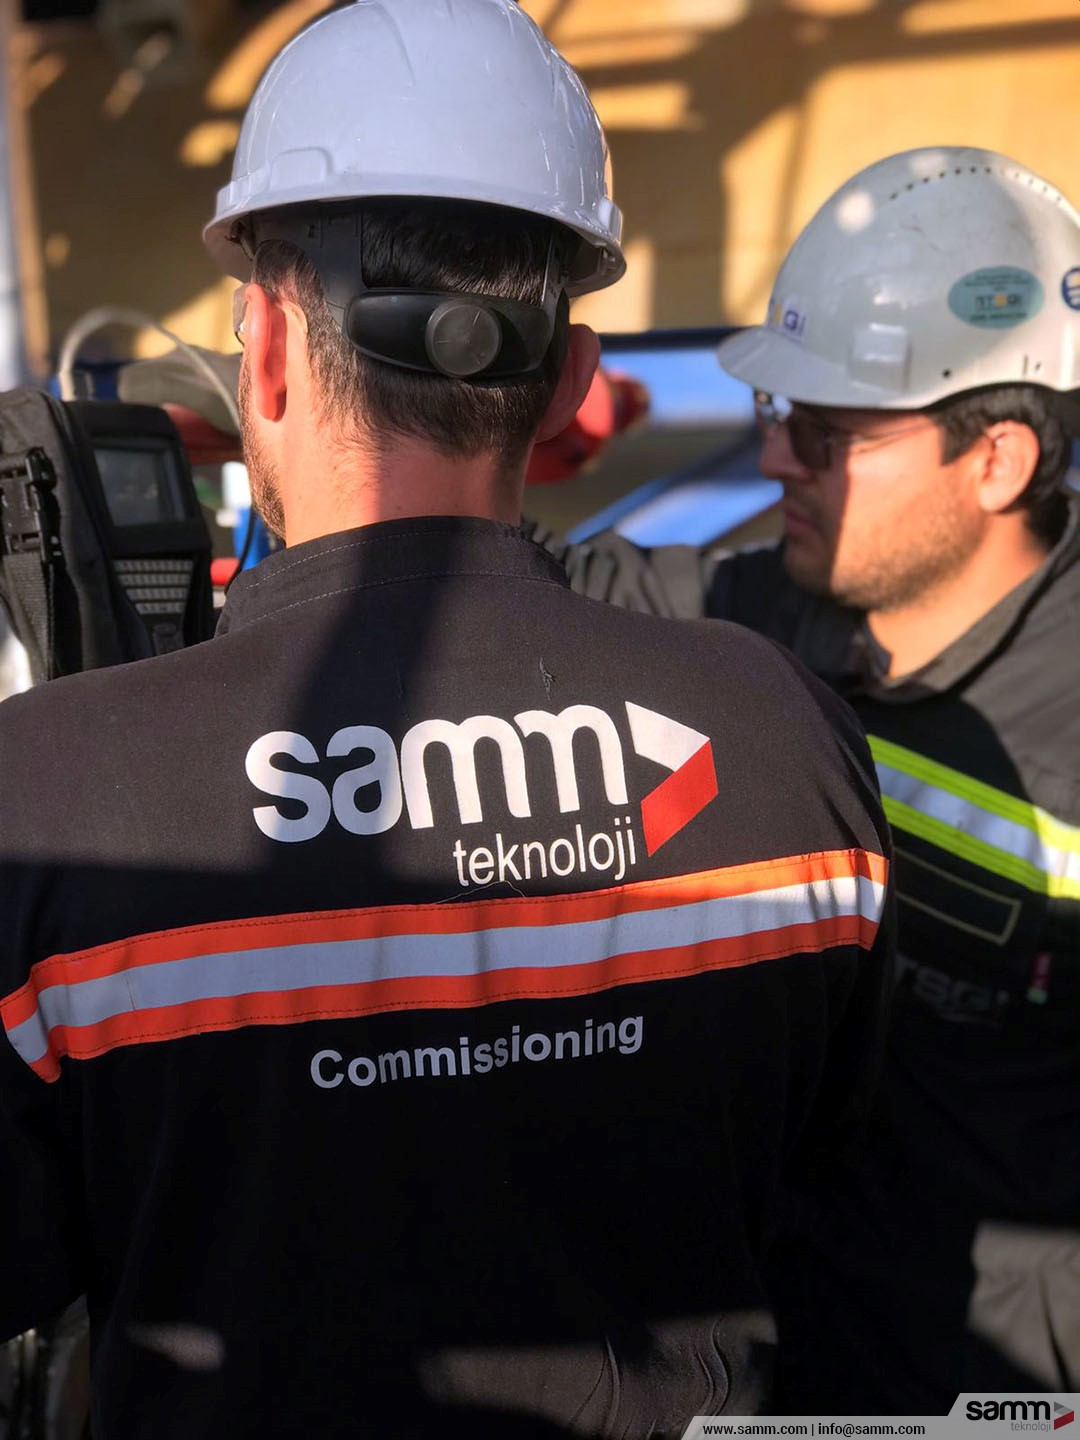 Samm Teknoloji | Loop test and fuctional test activities at site.